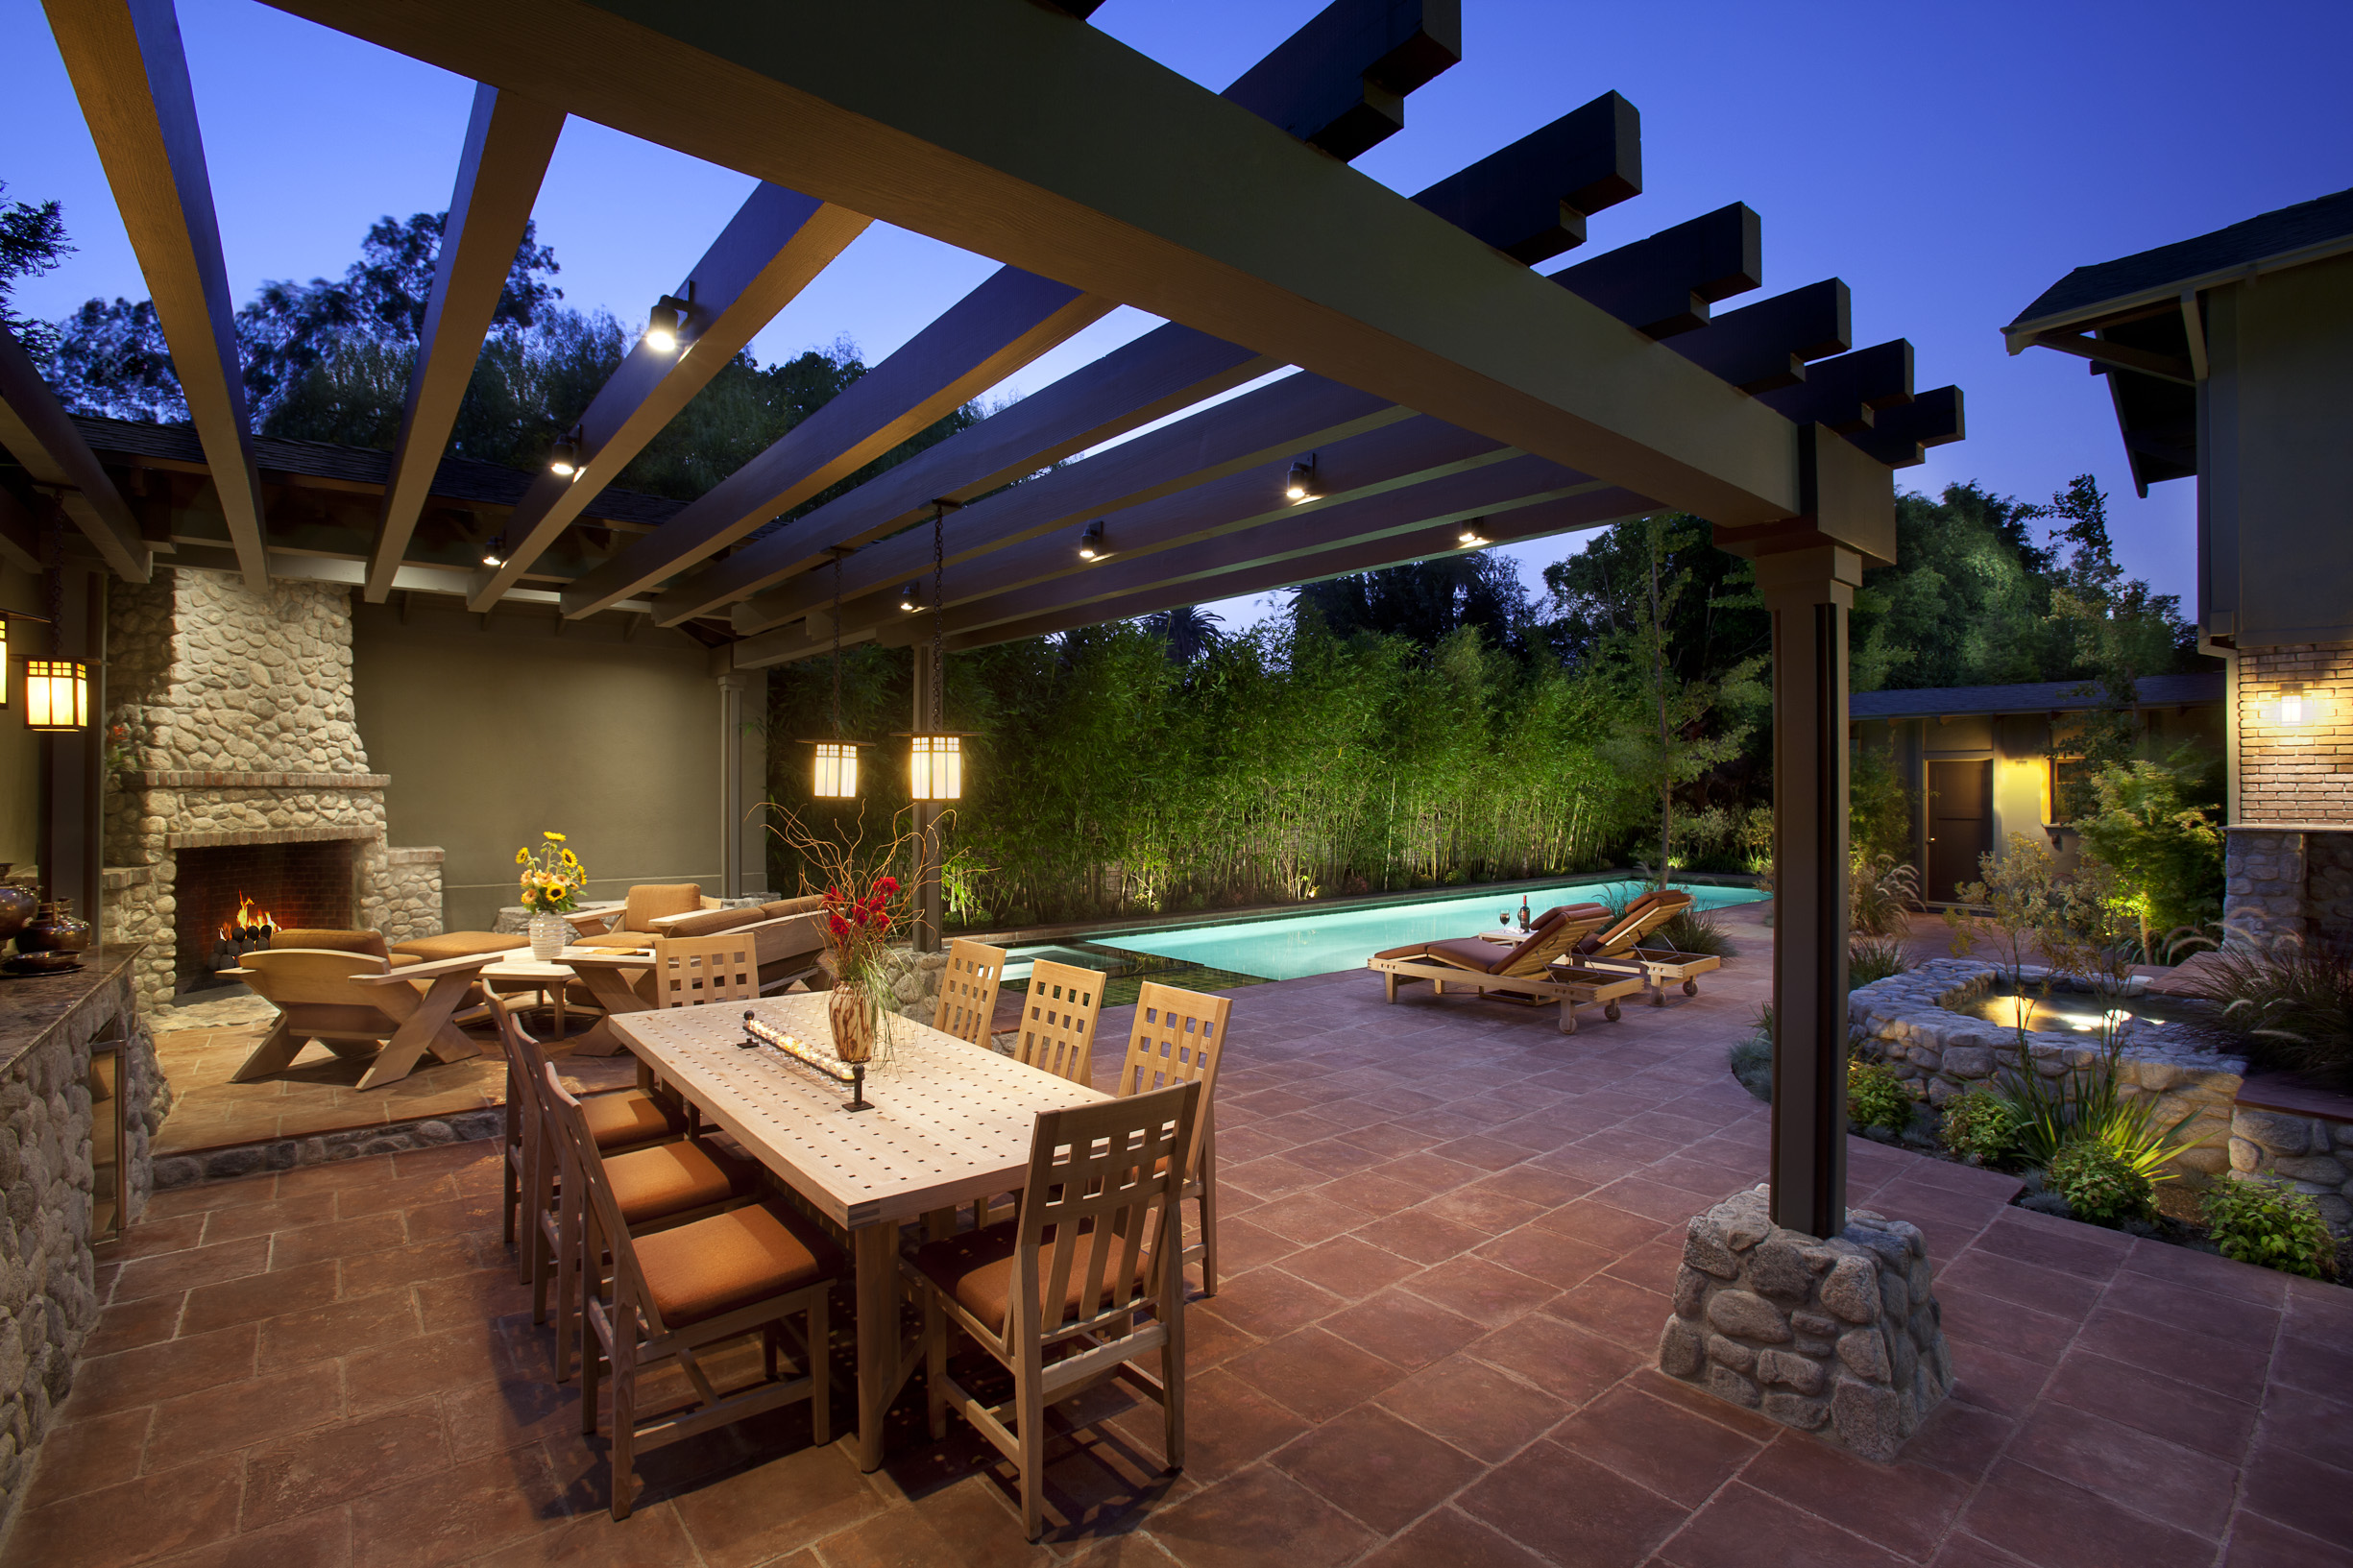 Outdoor Pool and Patio Designs